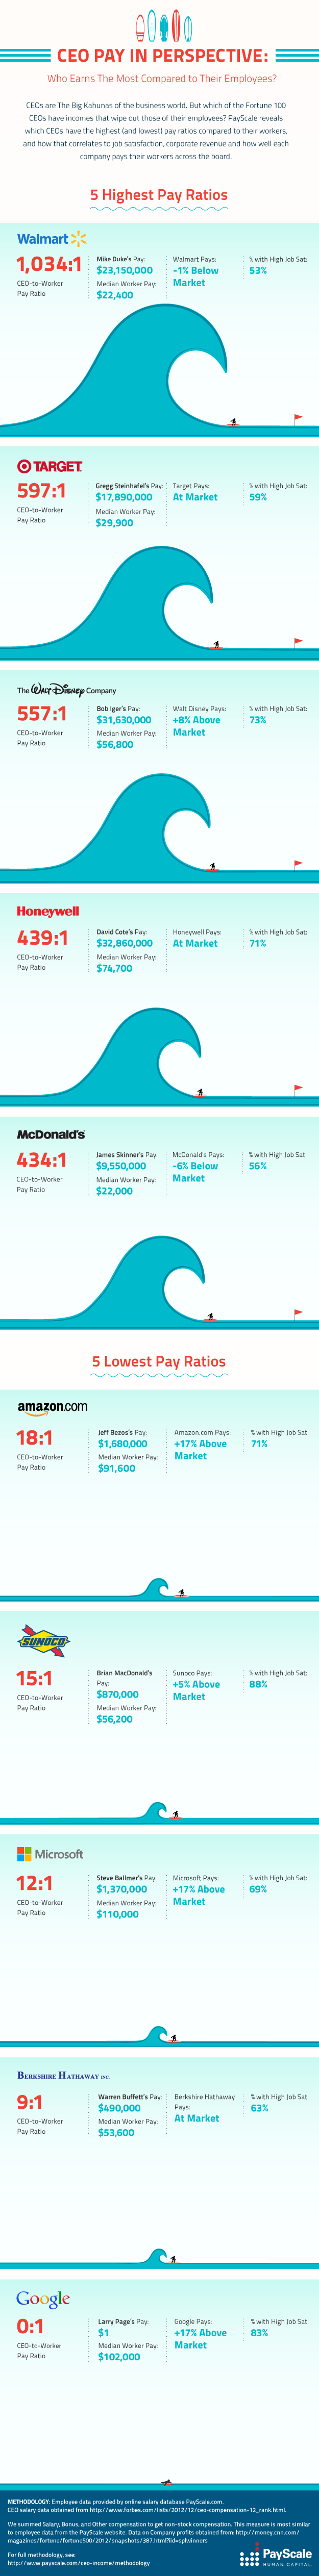 CEO Pay in Perspective